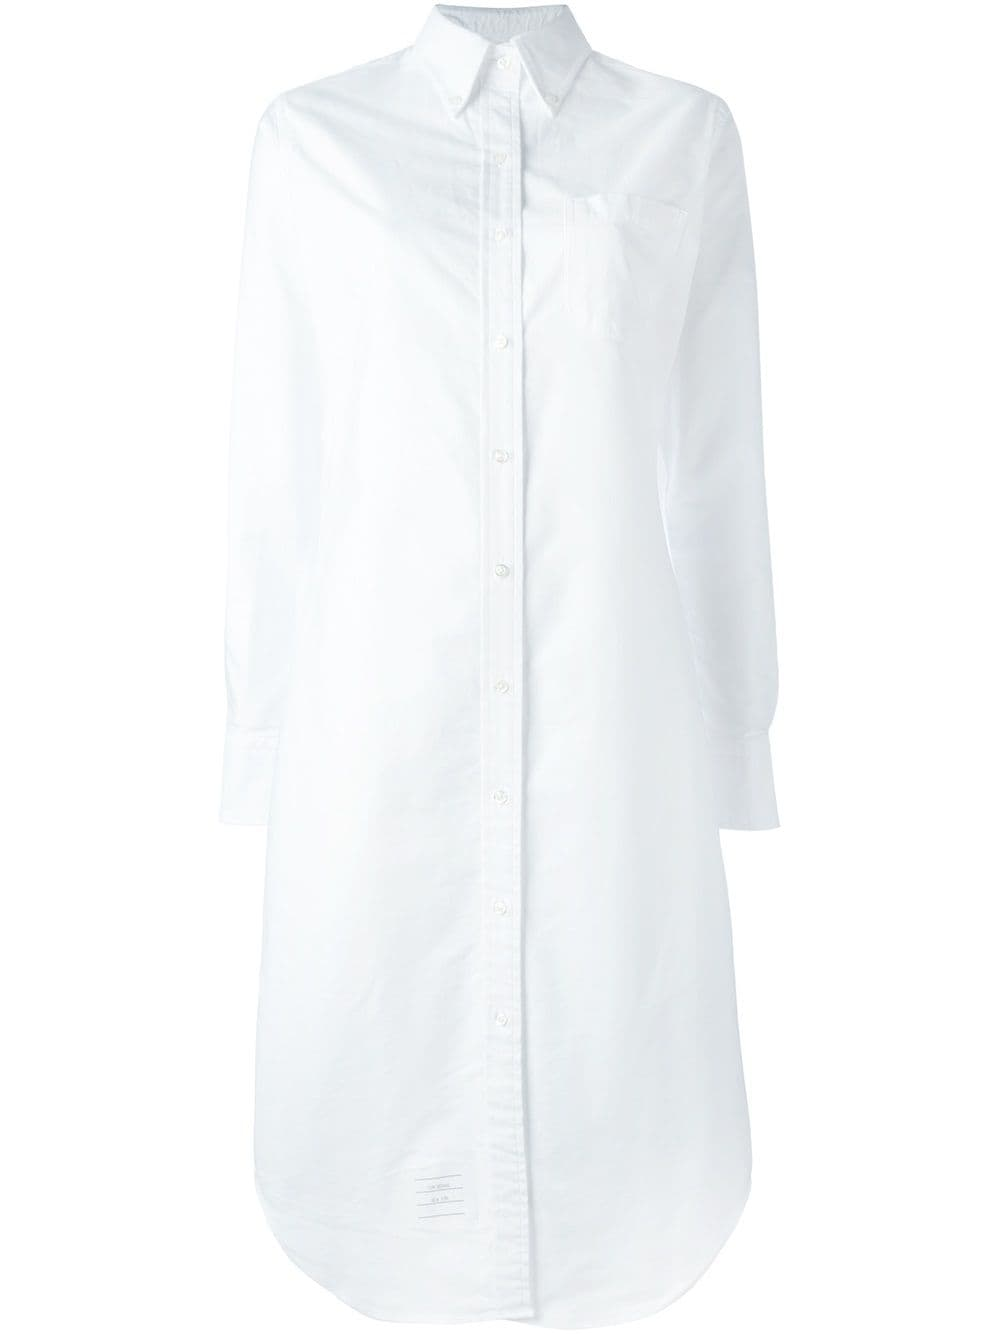 Thom Browne Long Sleeve Button Down Knee Length Shirtdress In Oxford - White von Thom Browne